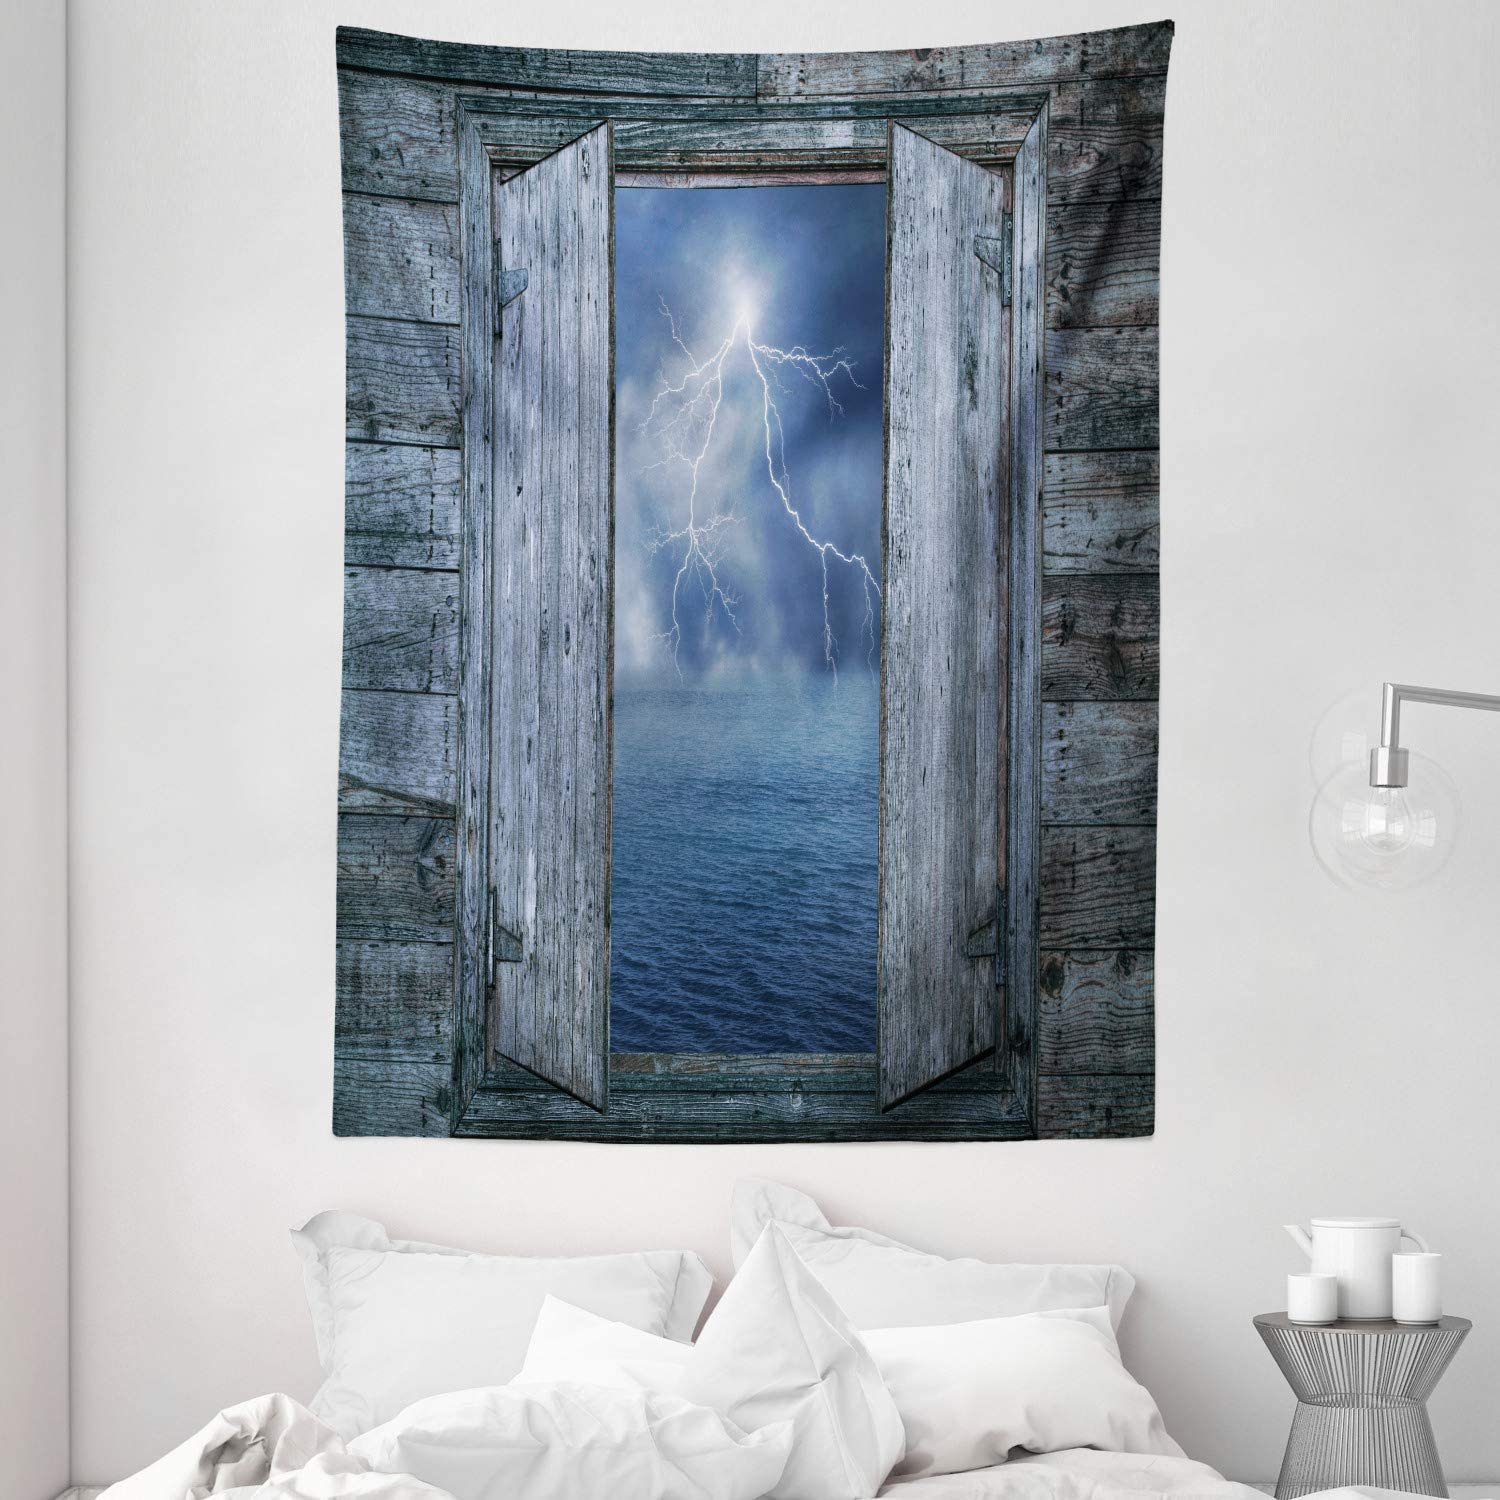 Ambesonne Nature Tapestry, Thunder Bolt at Night from Window in a Seaside House Forces of Nature Theme Print, Wall Hanging for Bedroom Living Room Dorm, 60